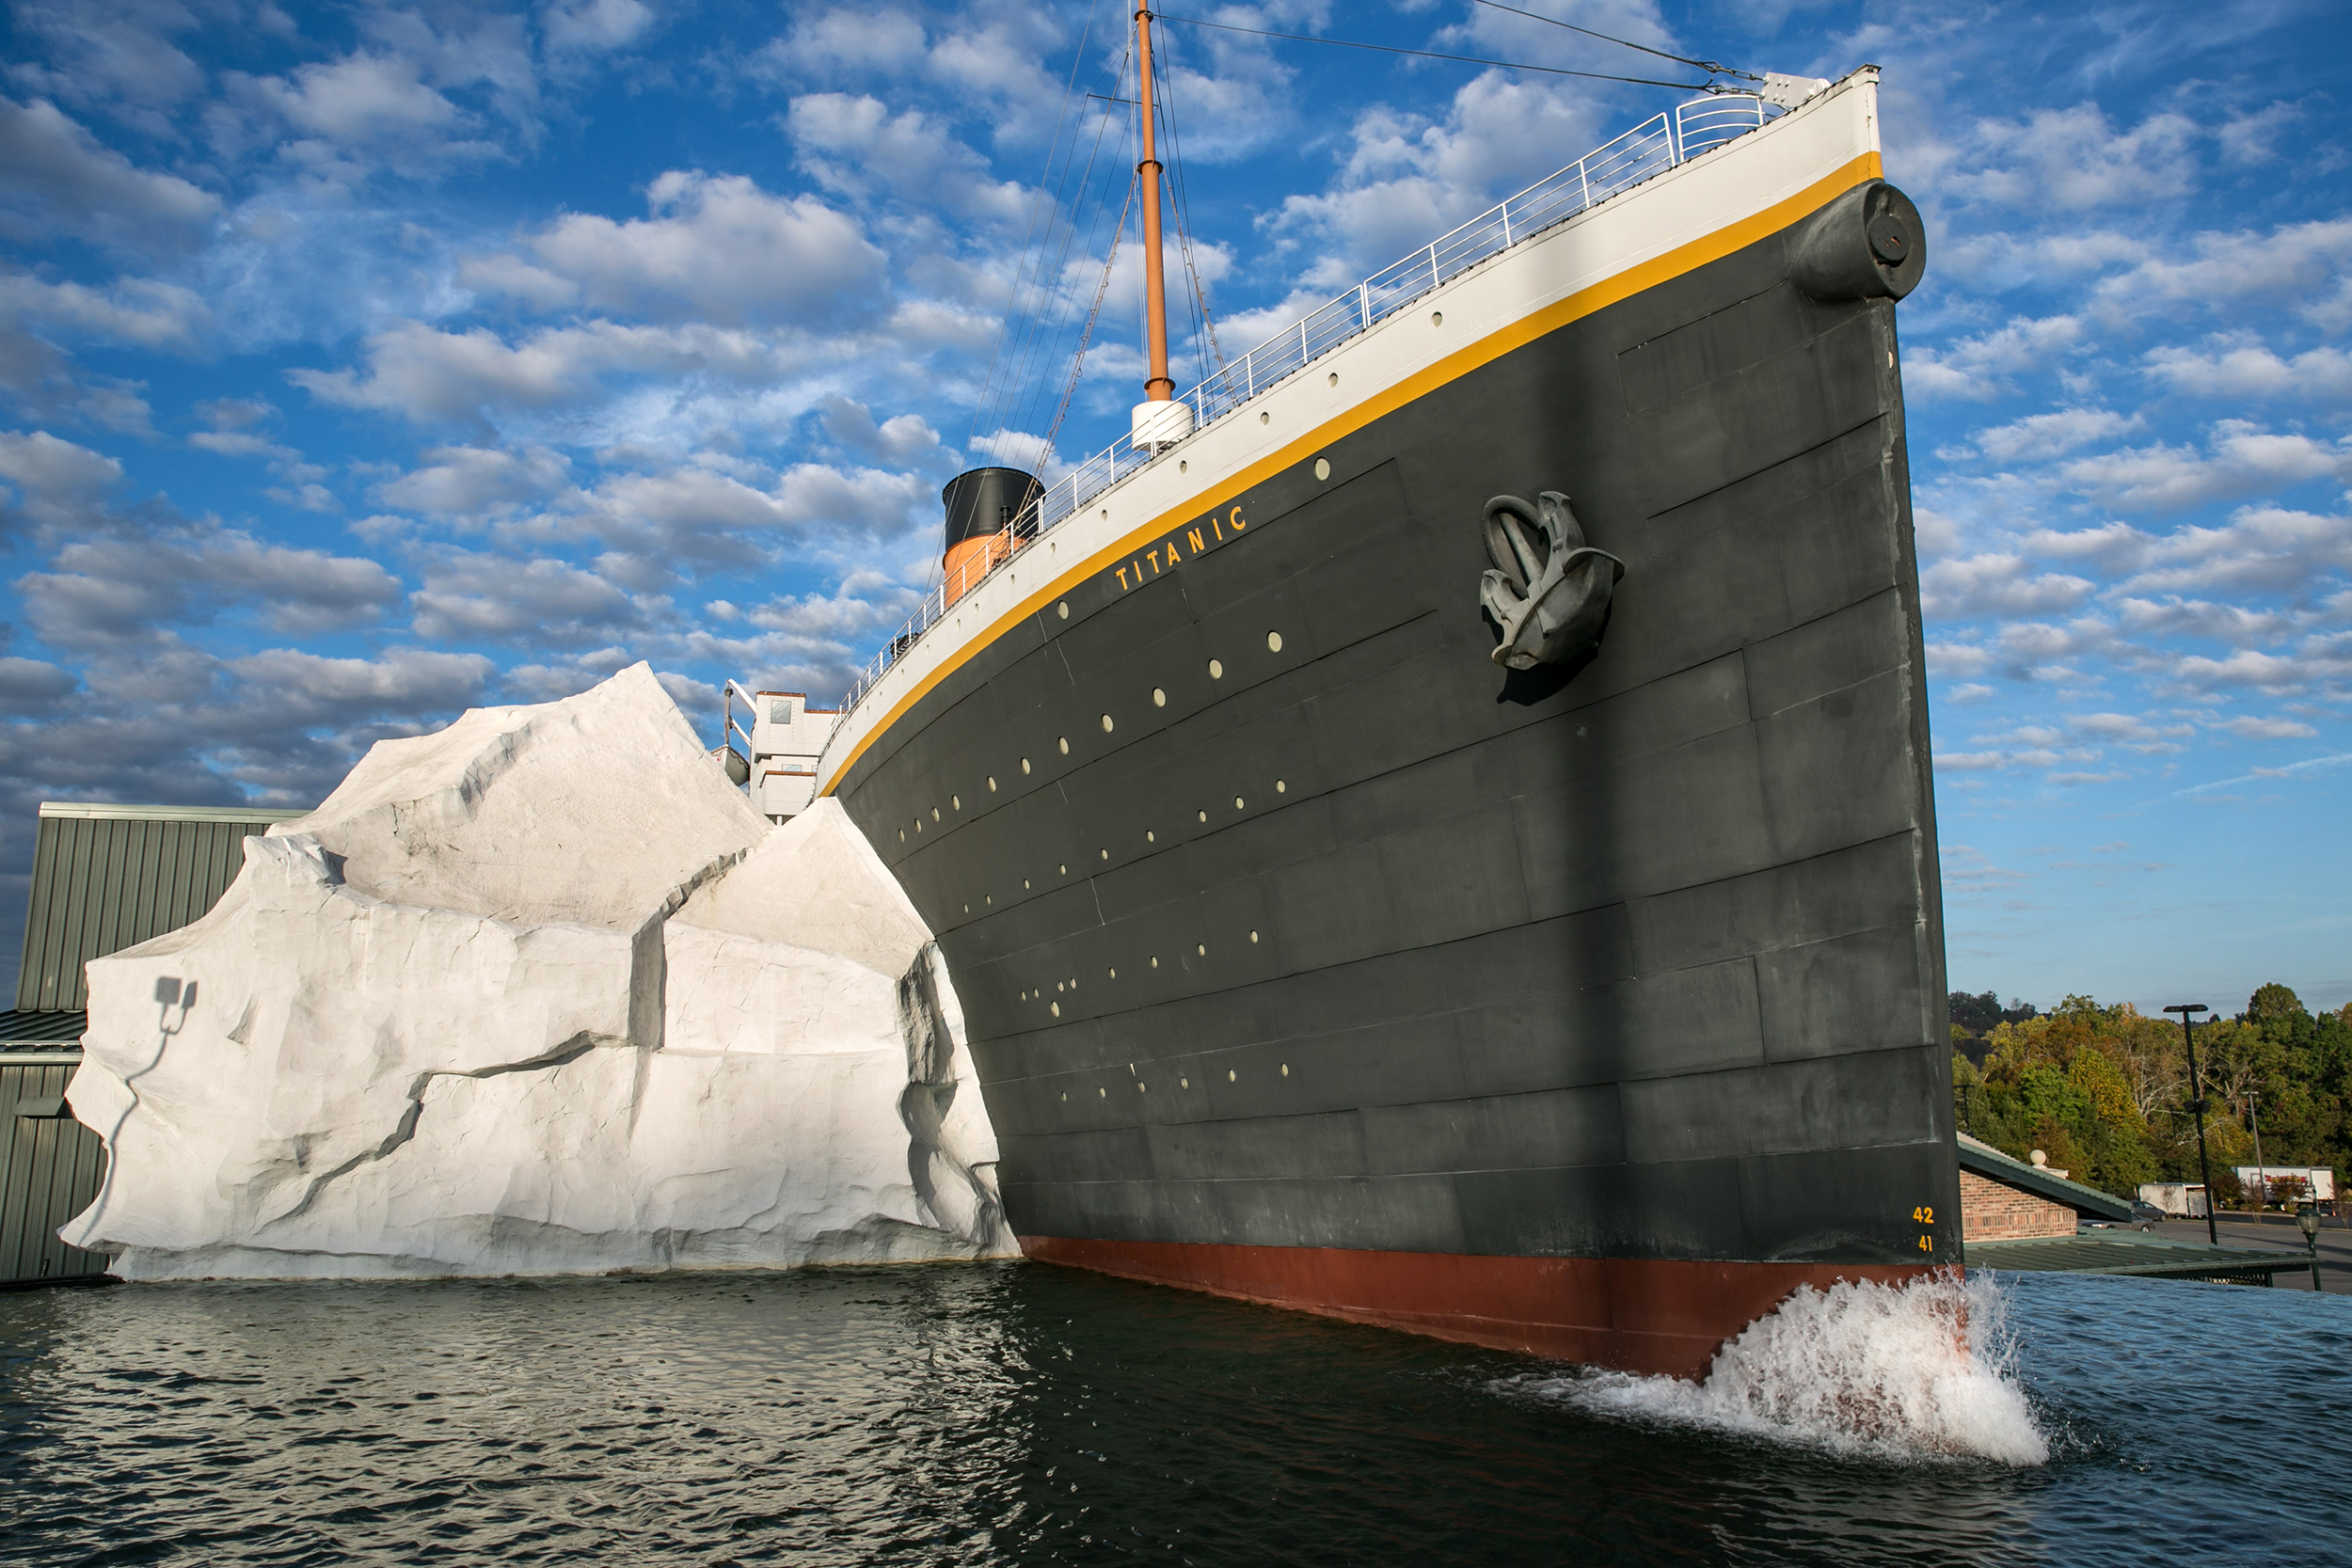 Titanic Museum ice wall collapse injures three in Tennessee